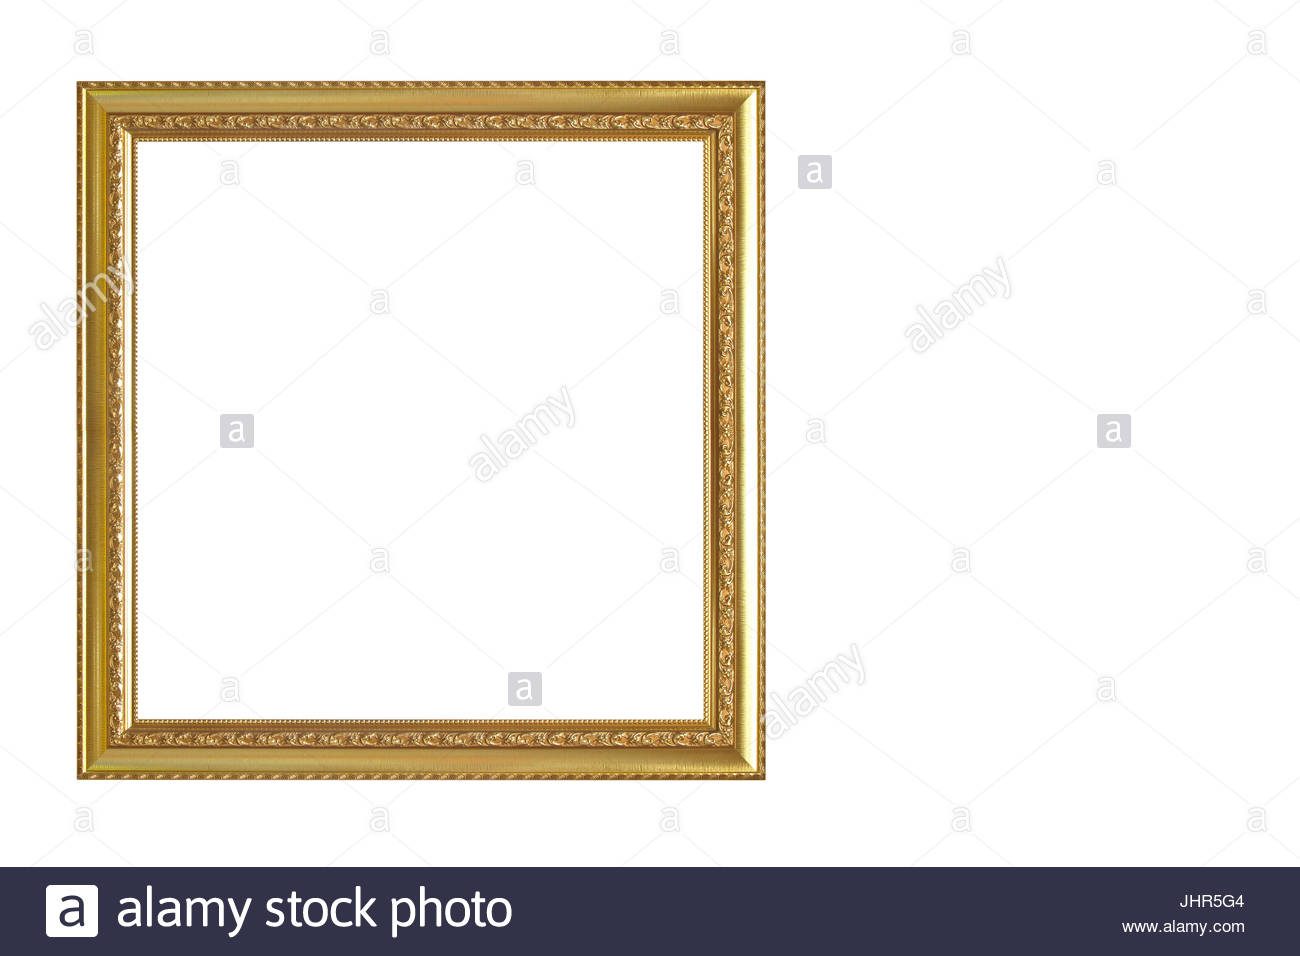 Wooden picture frame isolated on white background stock photo wooden picture frame isolated on white background jeuxipadfo Gallery